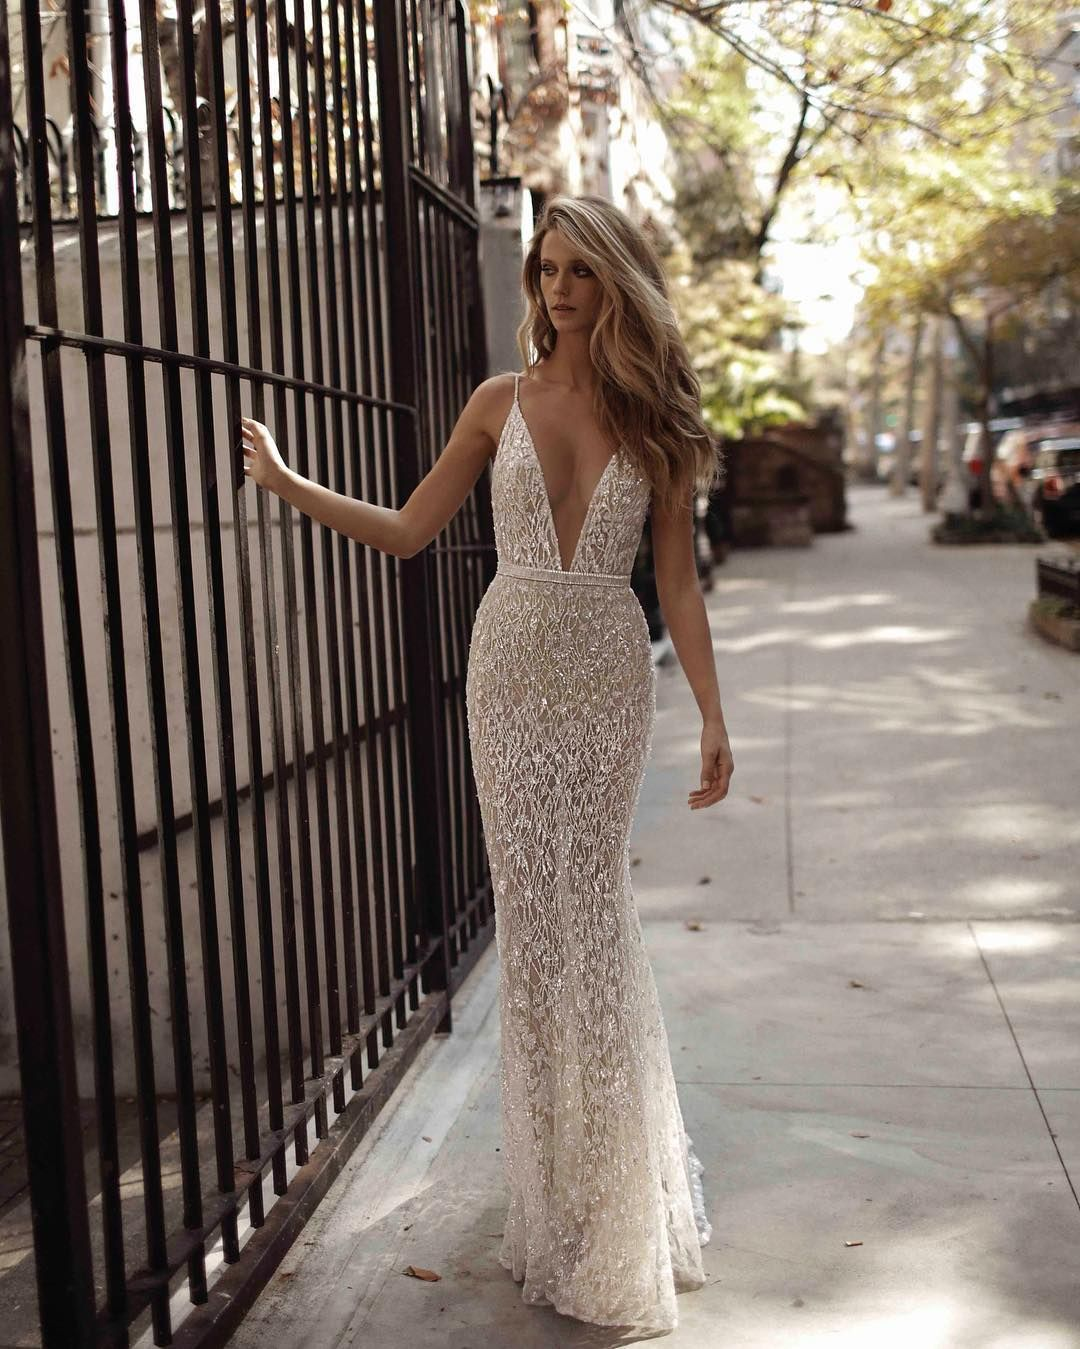 I Do I Do Wedding Gowns: Welcome To Paradise, Babe...